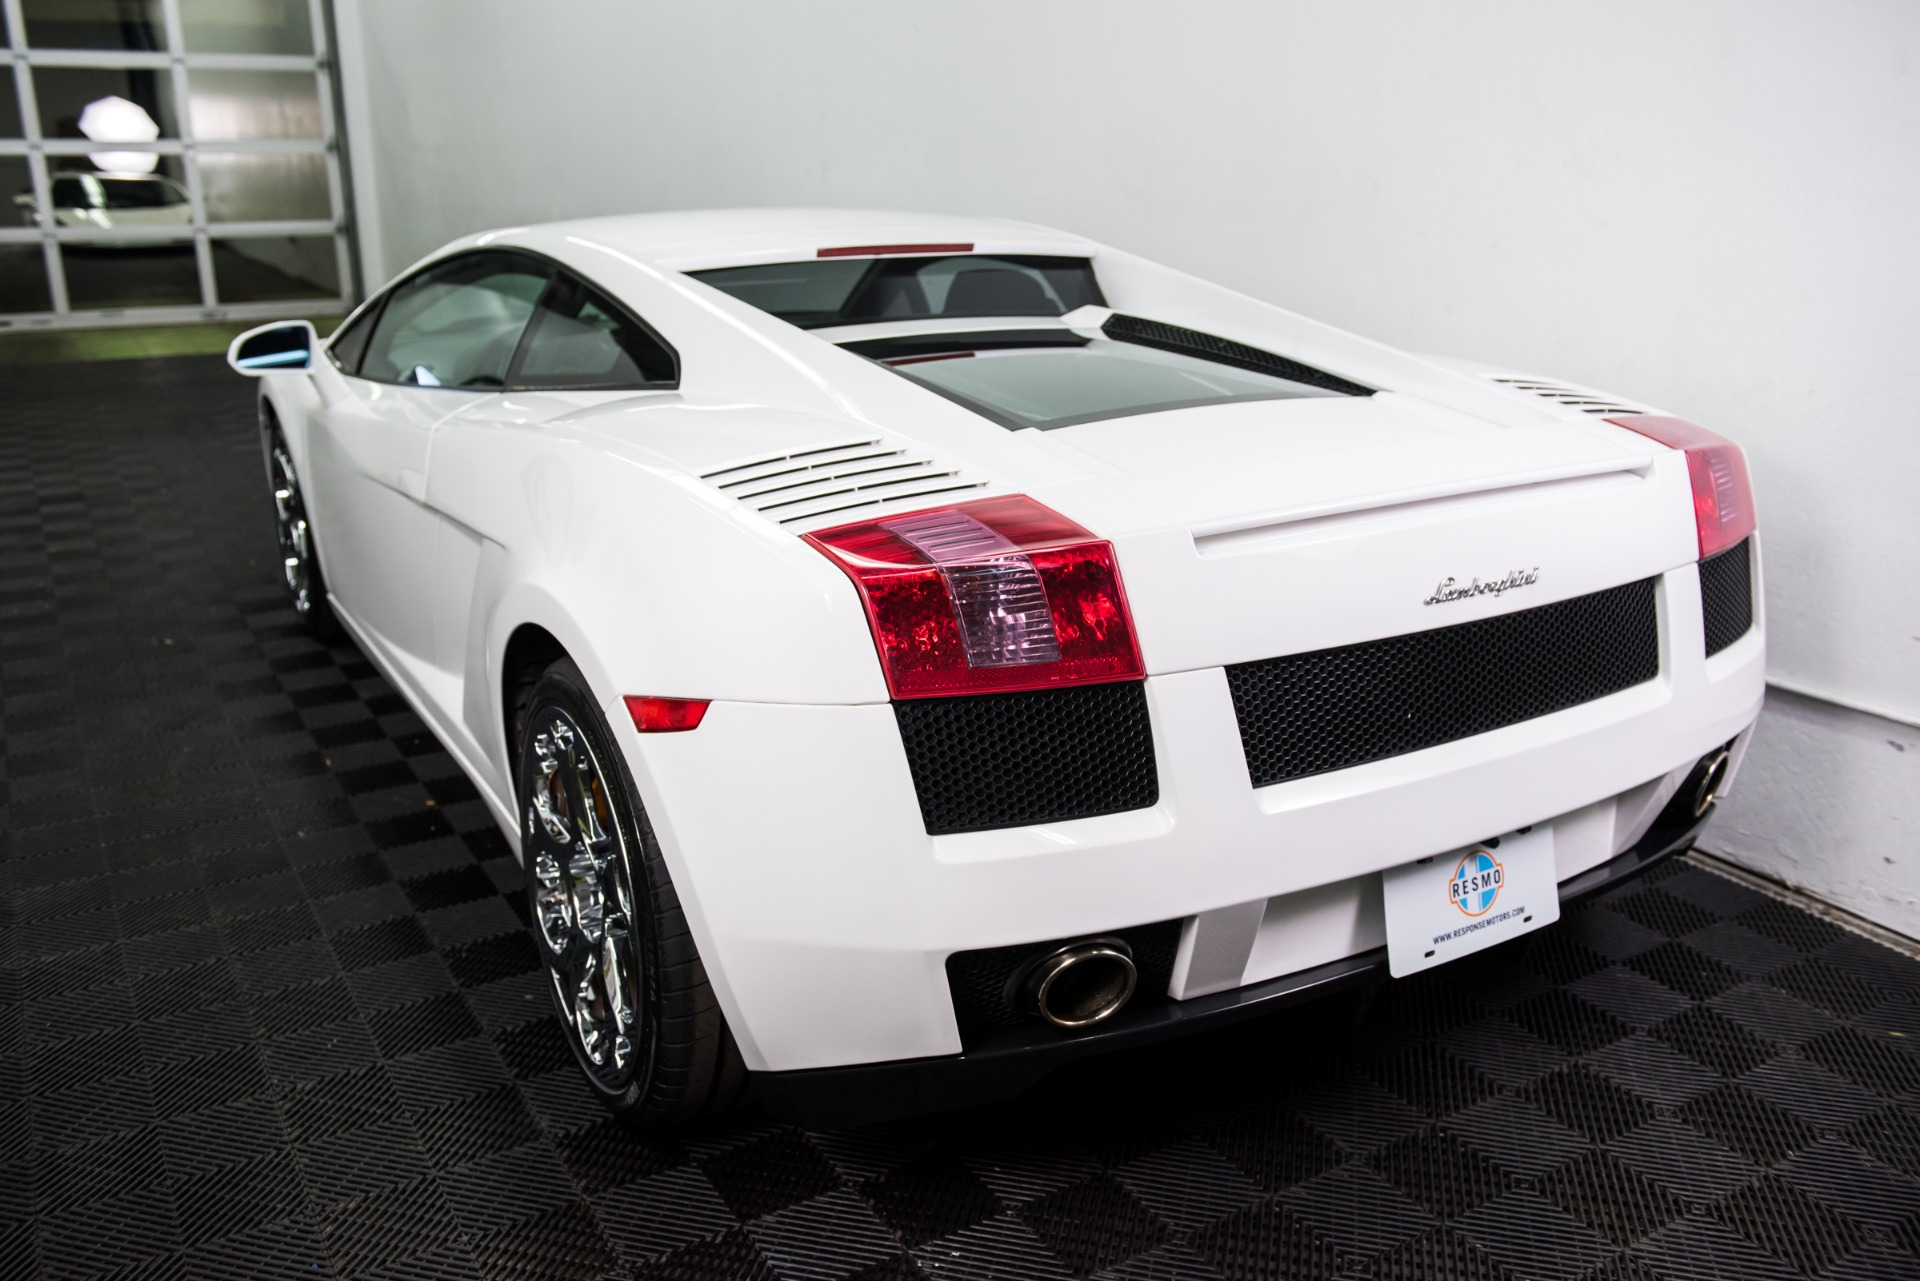 Used 2004 Lamborghini Gallardo Used 2004 Lamborghini Gallardo for sale Sold at Response Motors in Mountain View CA 9